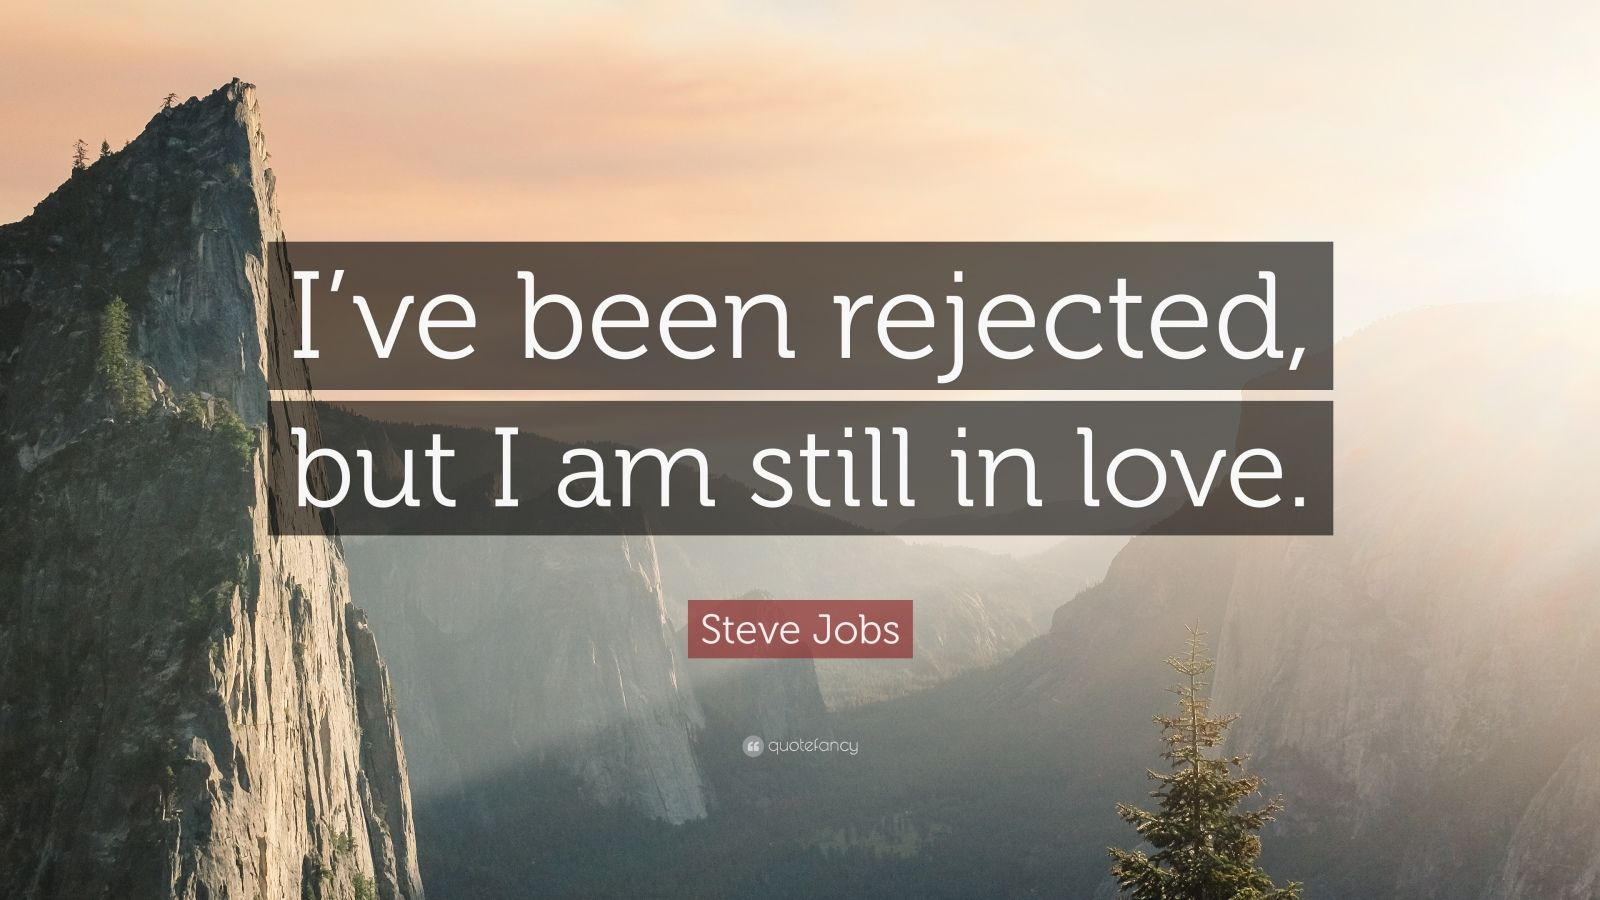 Steve Jobs Quote: I've been rejected, but I am still in love.